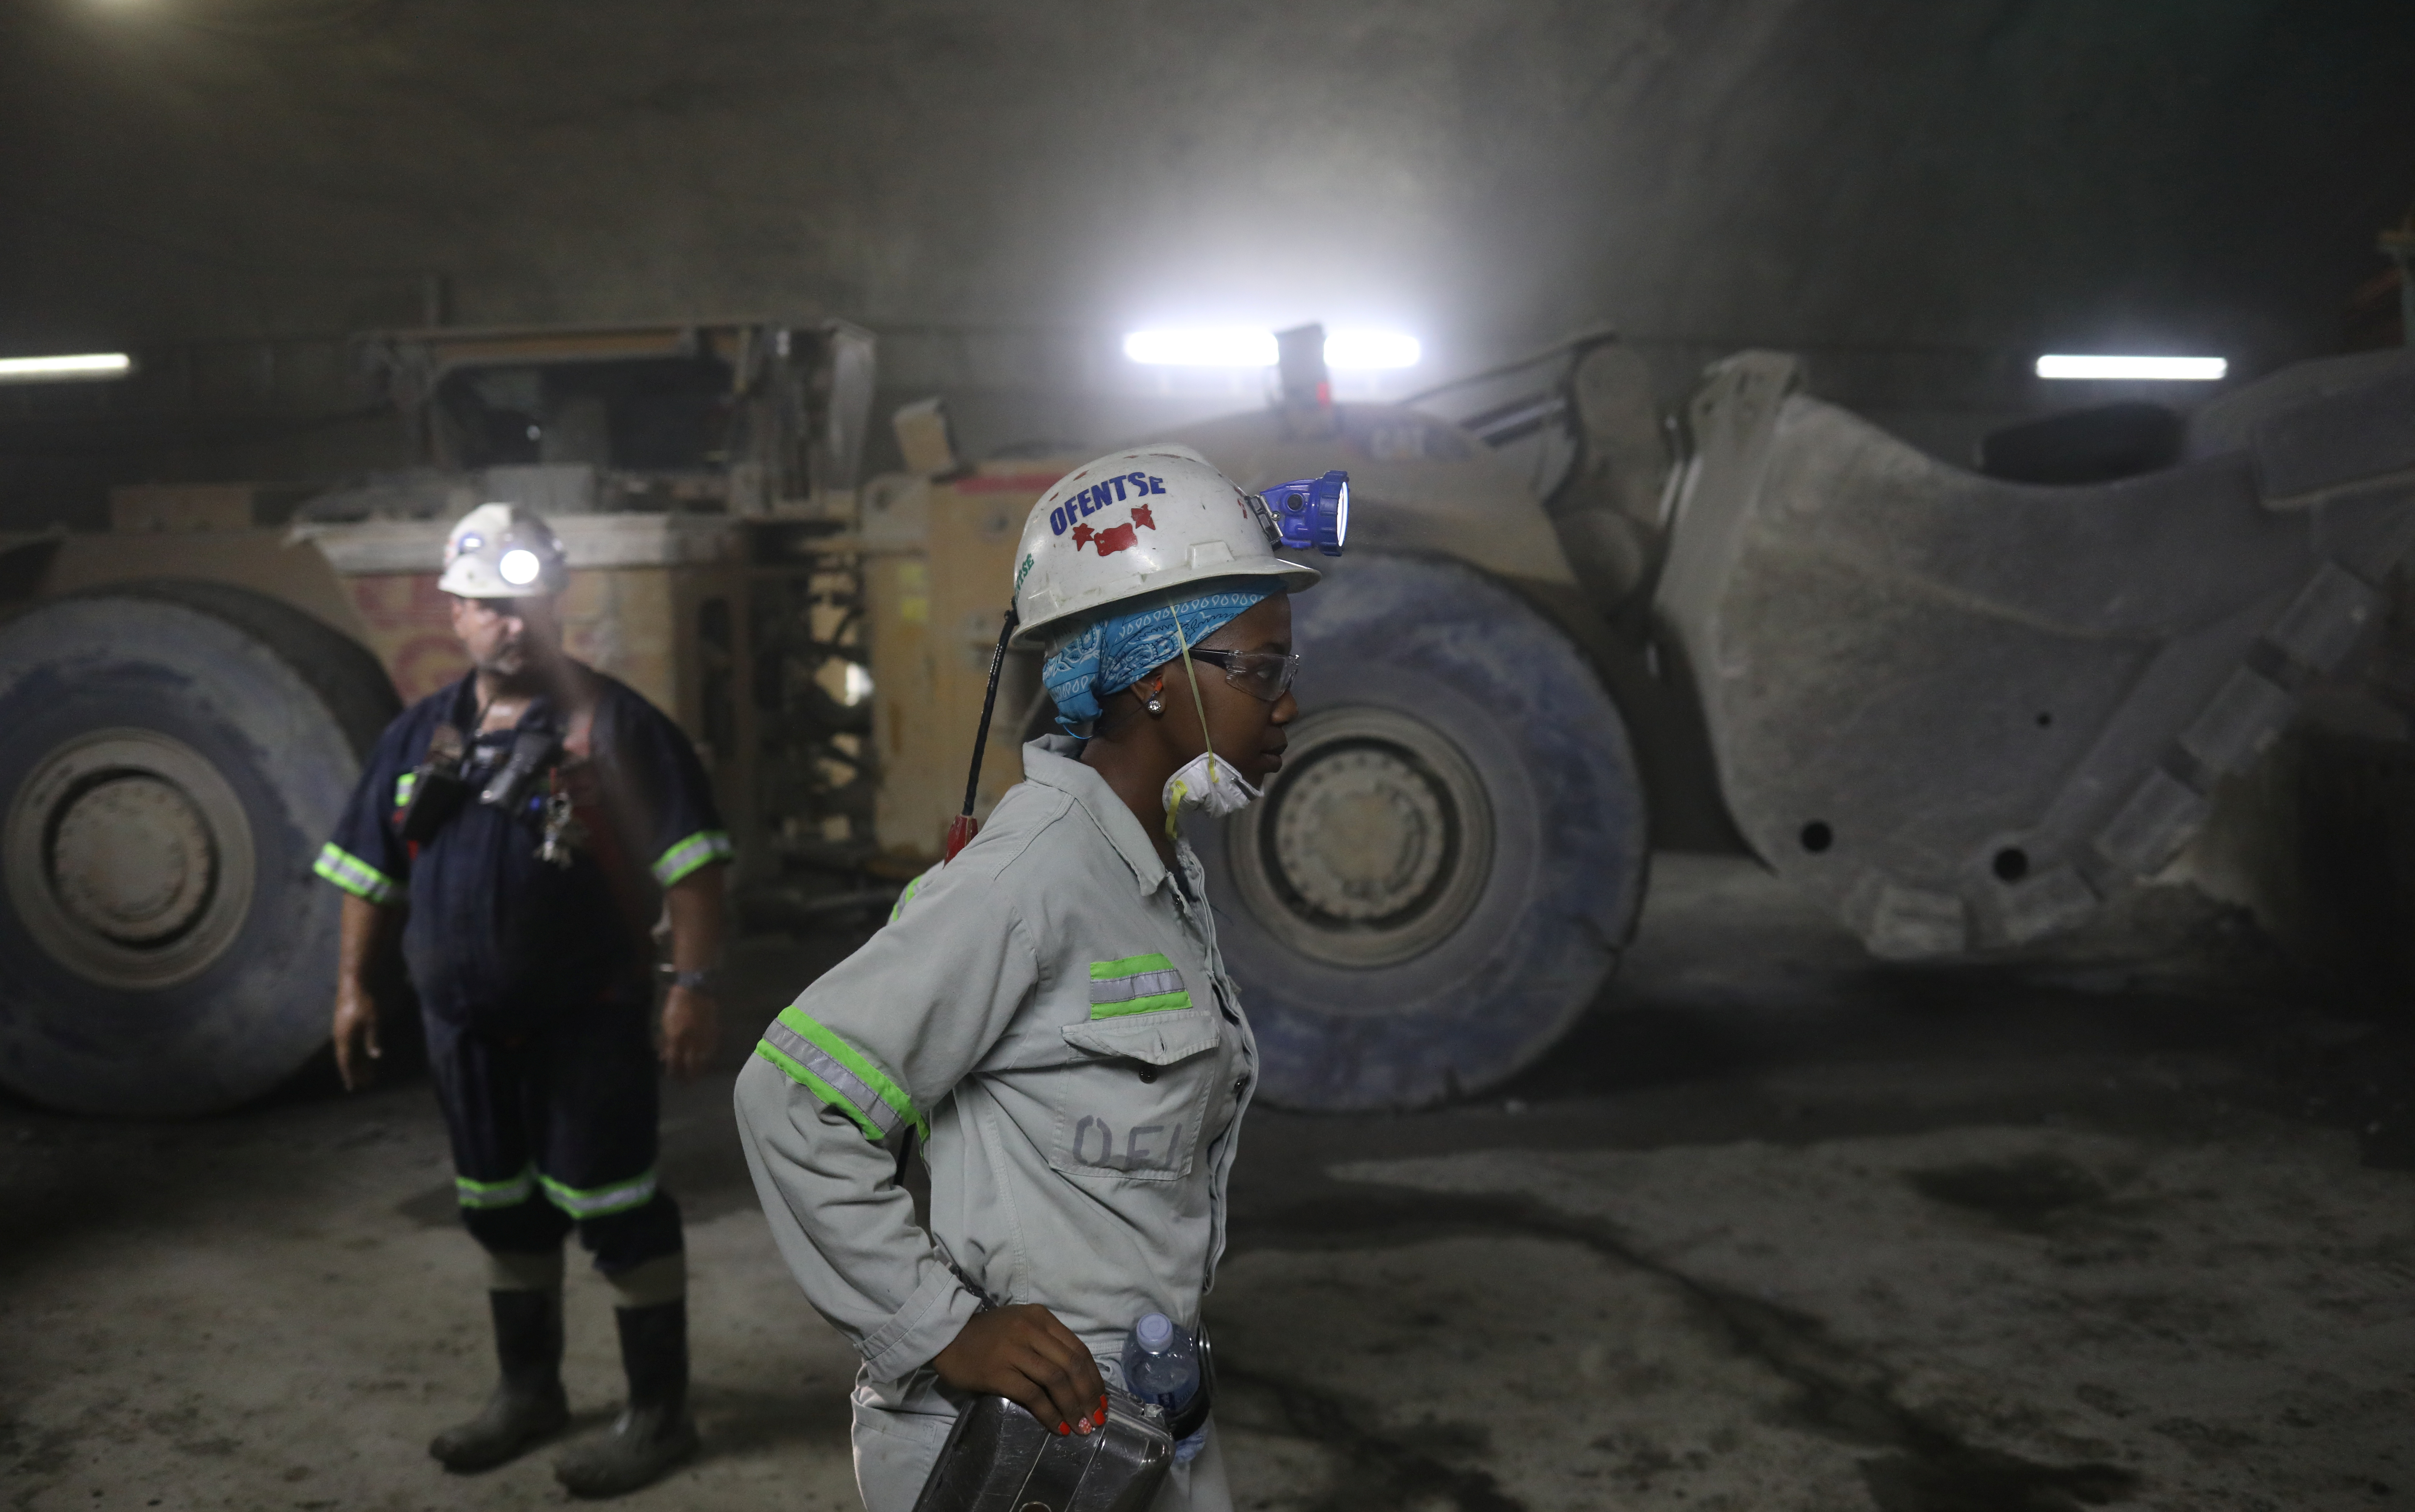 Mine workers are seen under ground at Cullinan mine, near Pretoria, South Africa, February 1, 2019. REUTERS/Siphiwe Sibeko